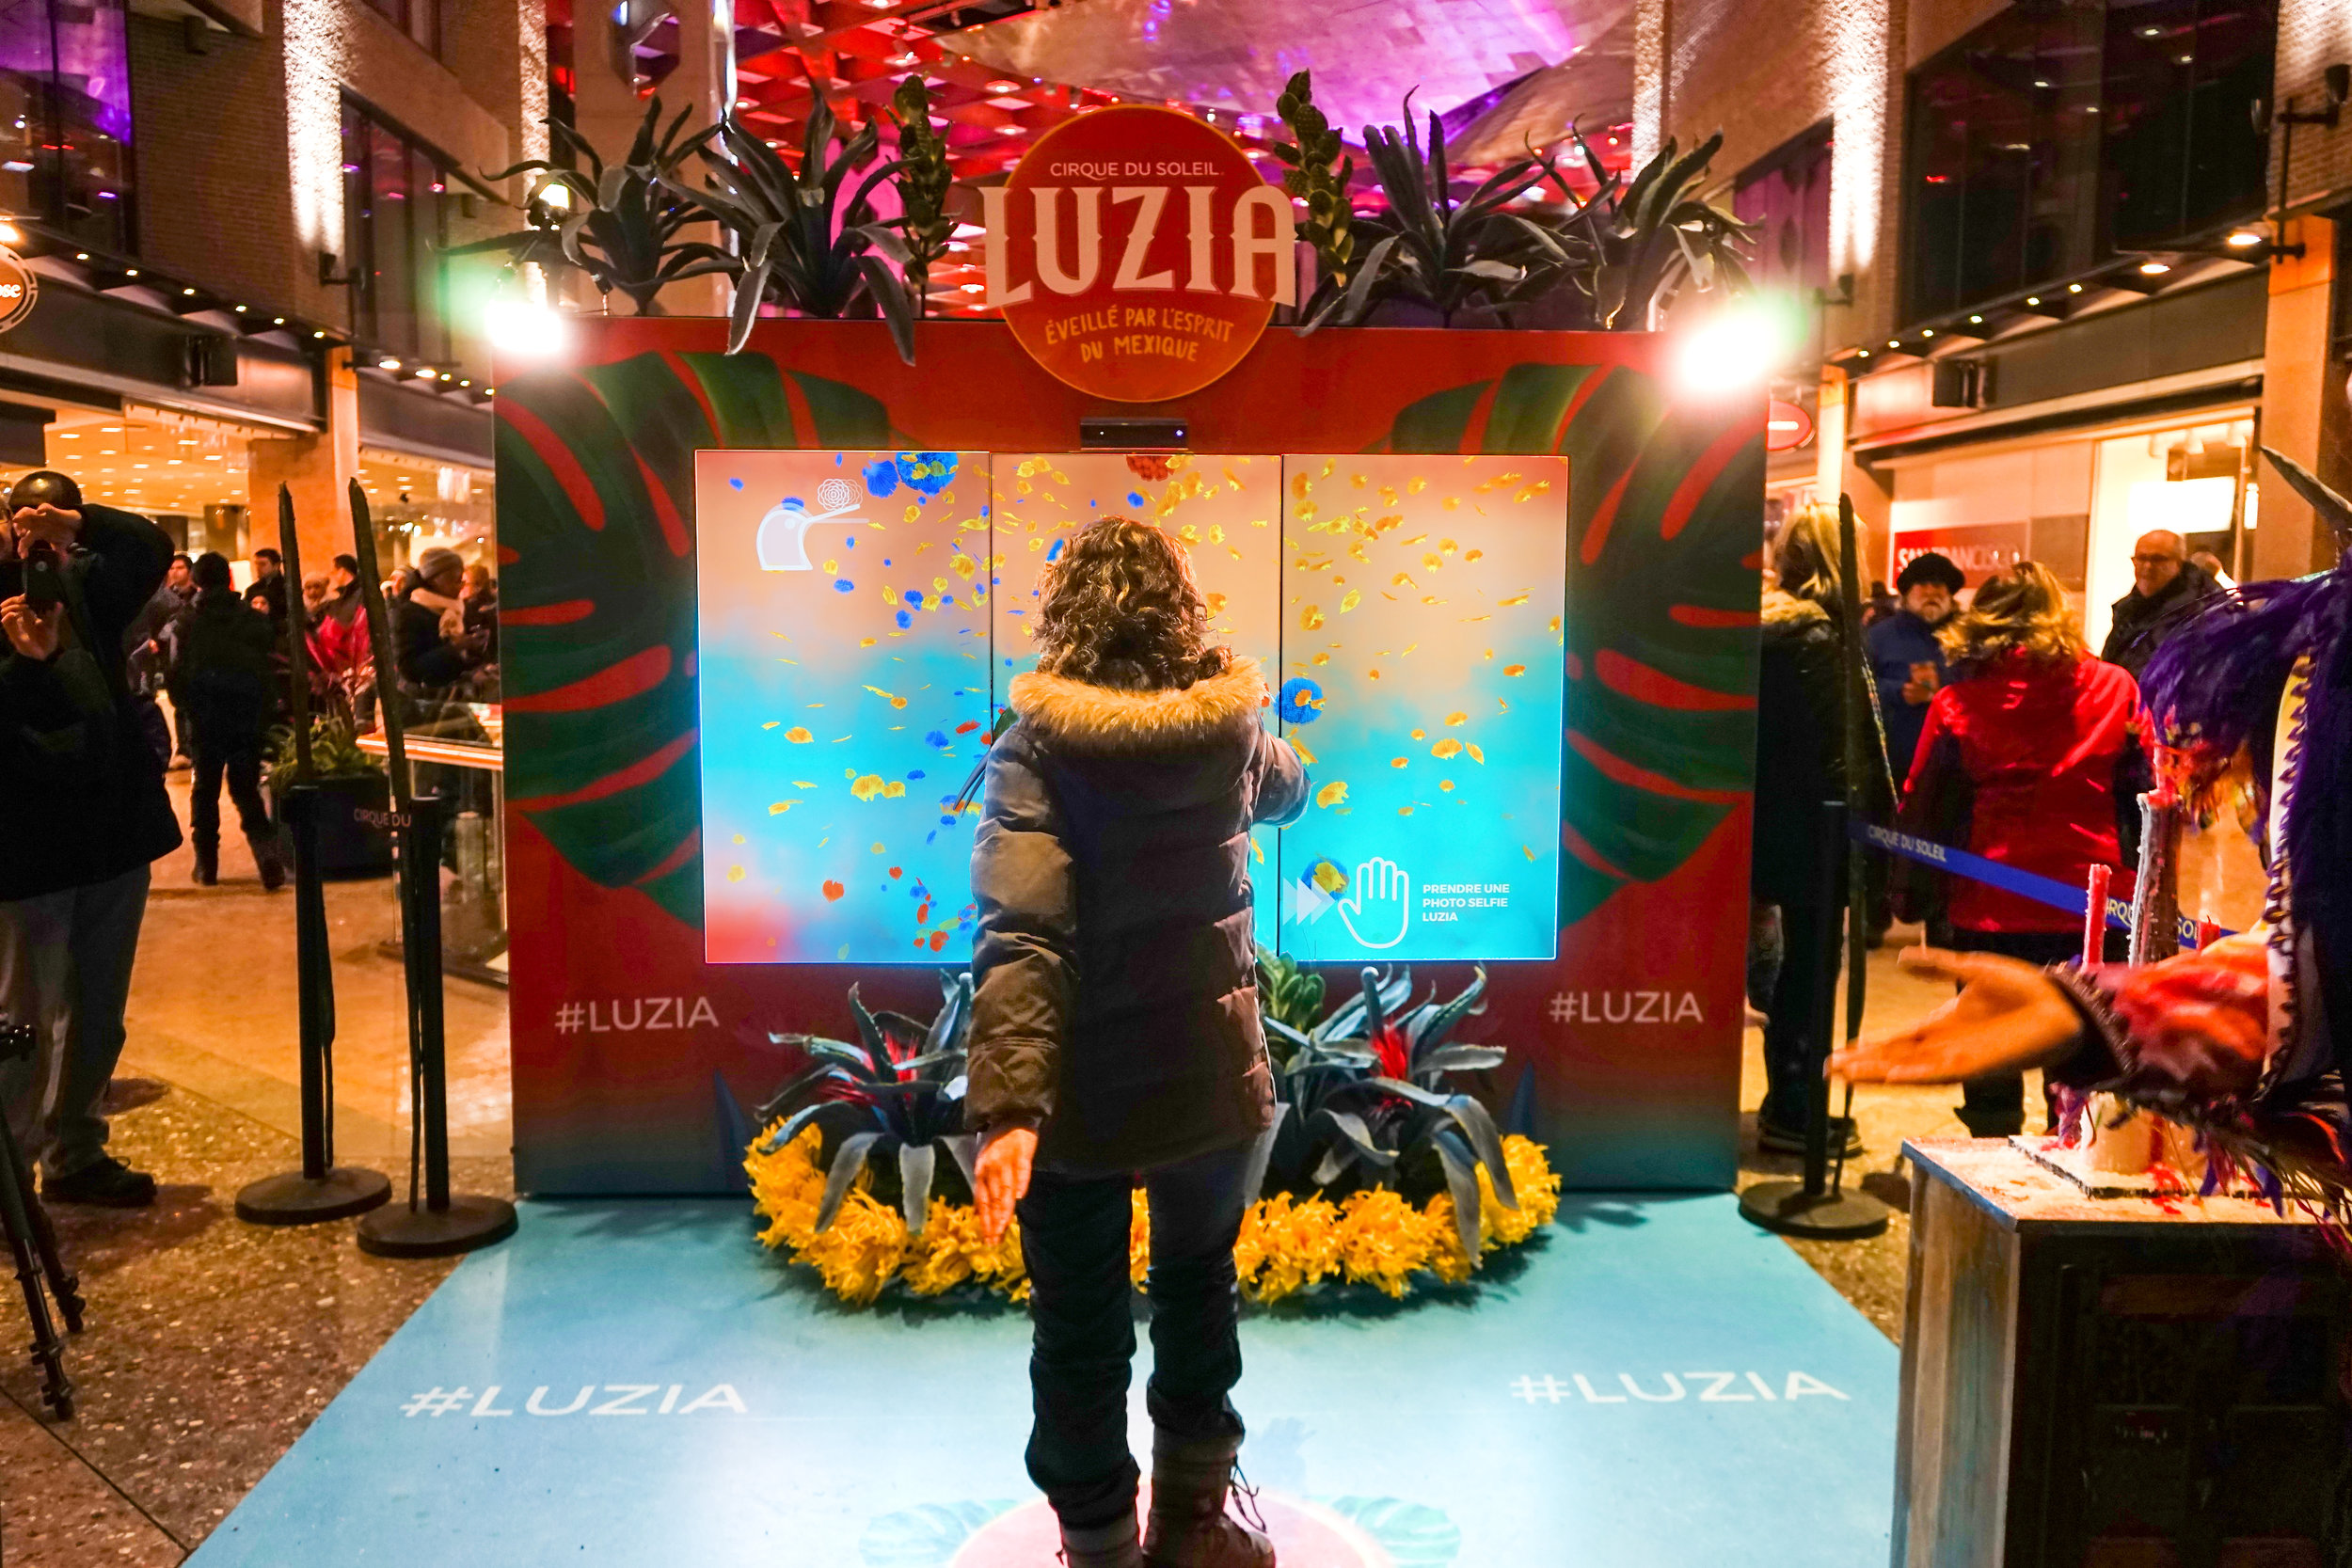 LUZIA (CIRQUE DU SOLEIL)    ///   MONTRÉAL, MEXICO CITY, WASHINGTON D.C.